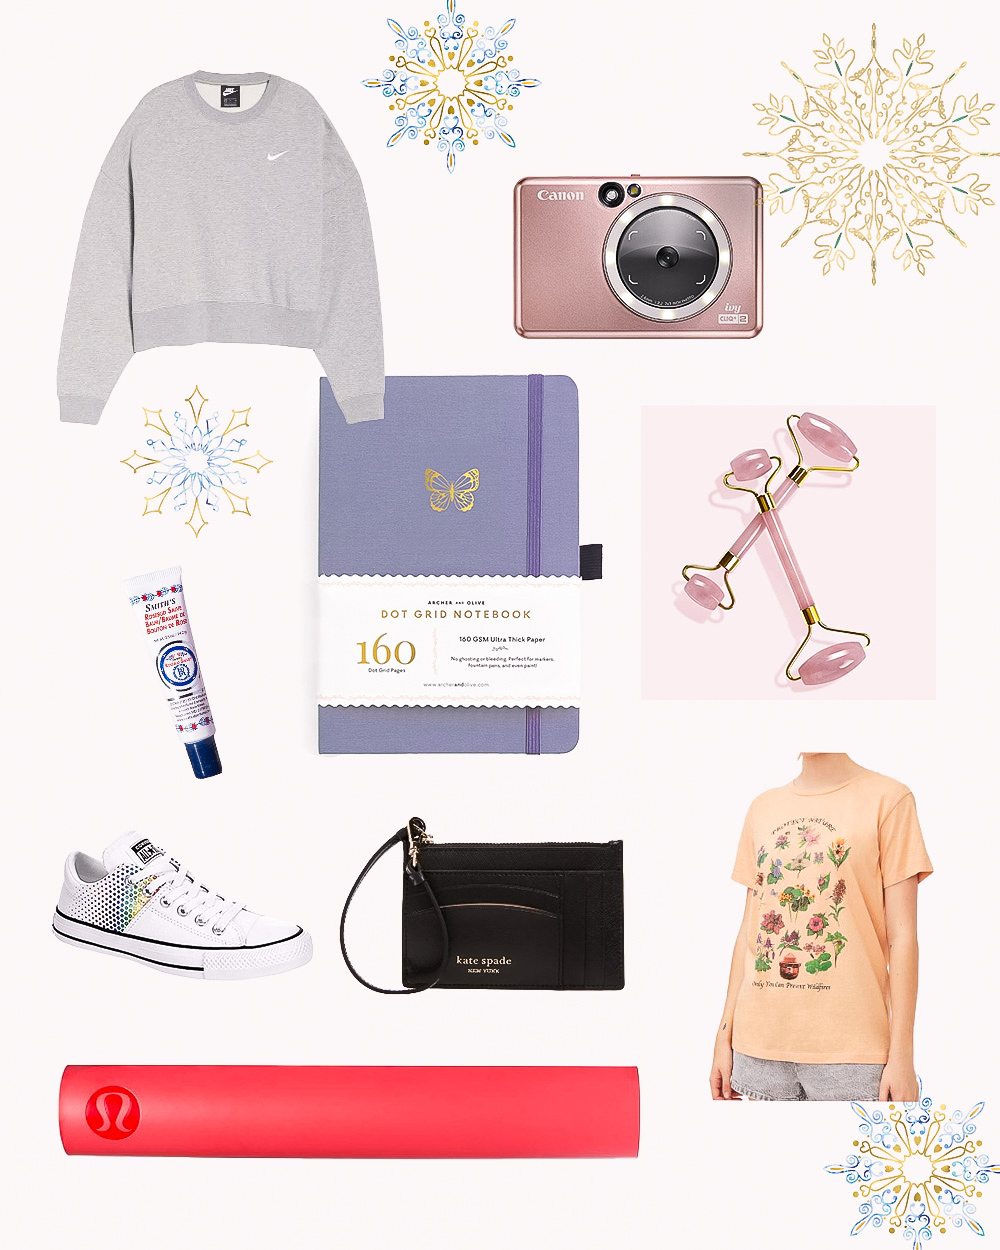 2020 Gift Guide for Teenage Girls